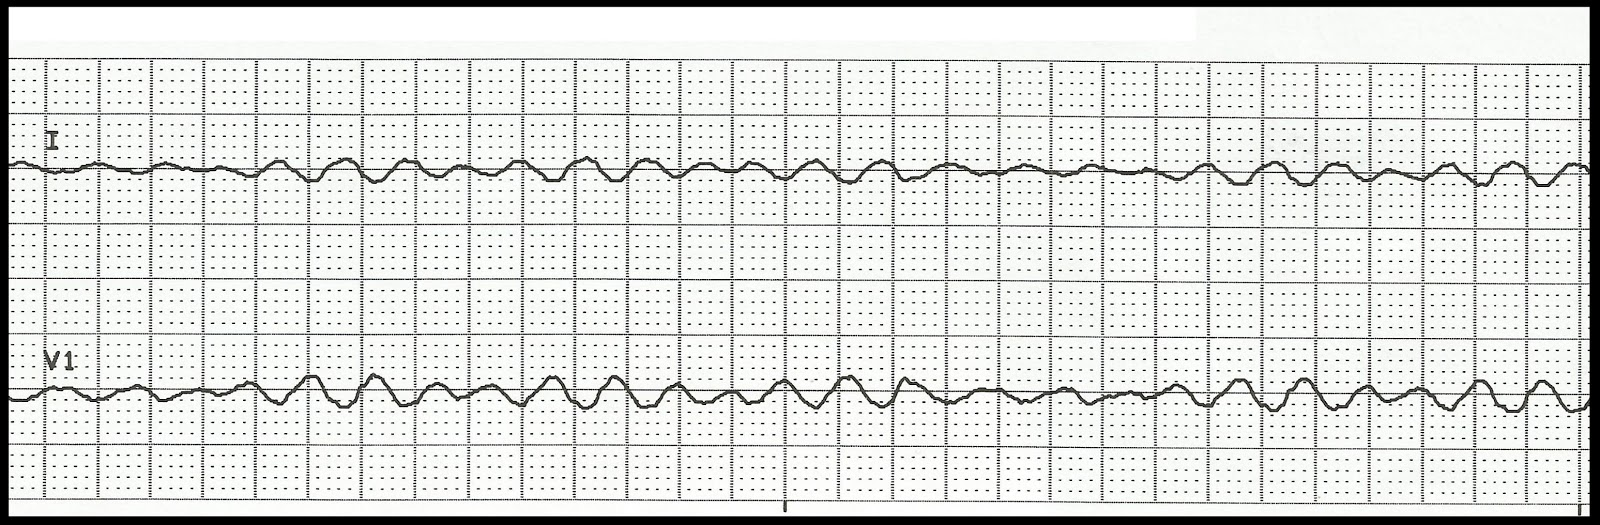 Float NurseVentricular Fibrillation Ecg